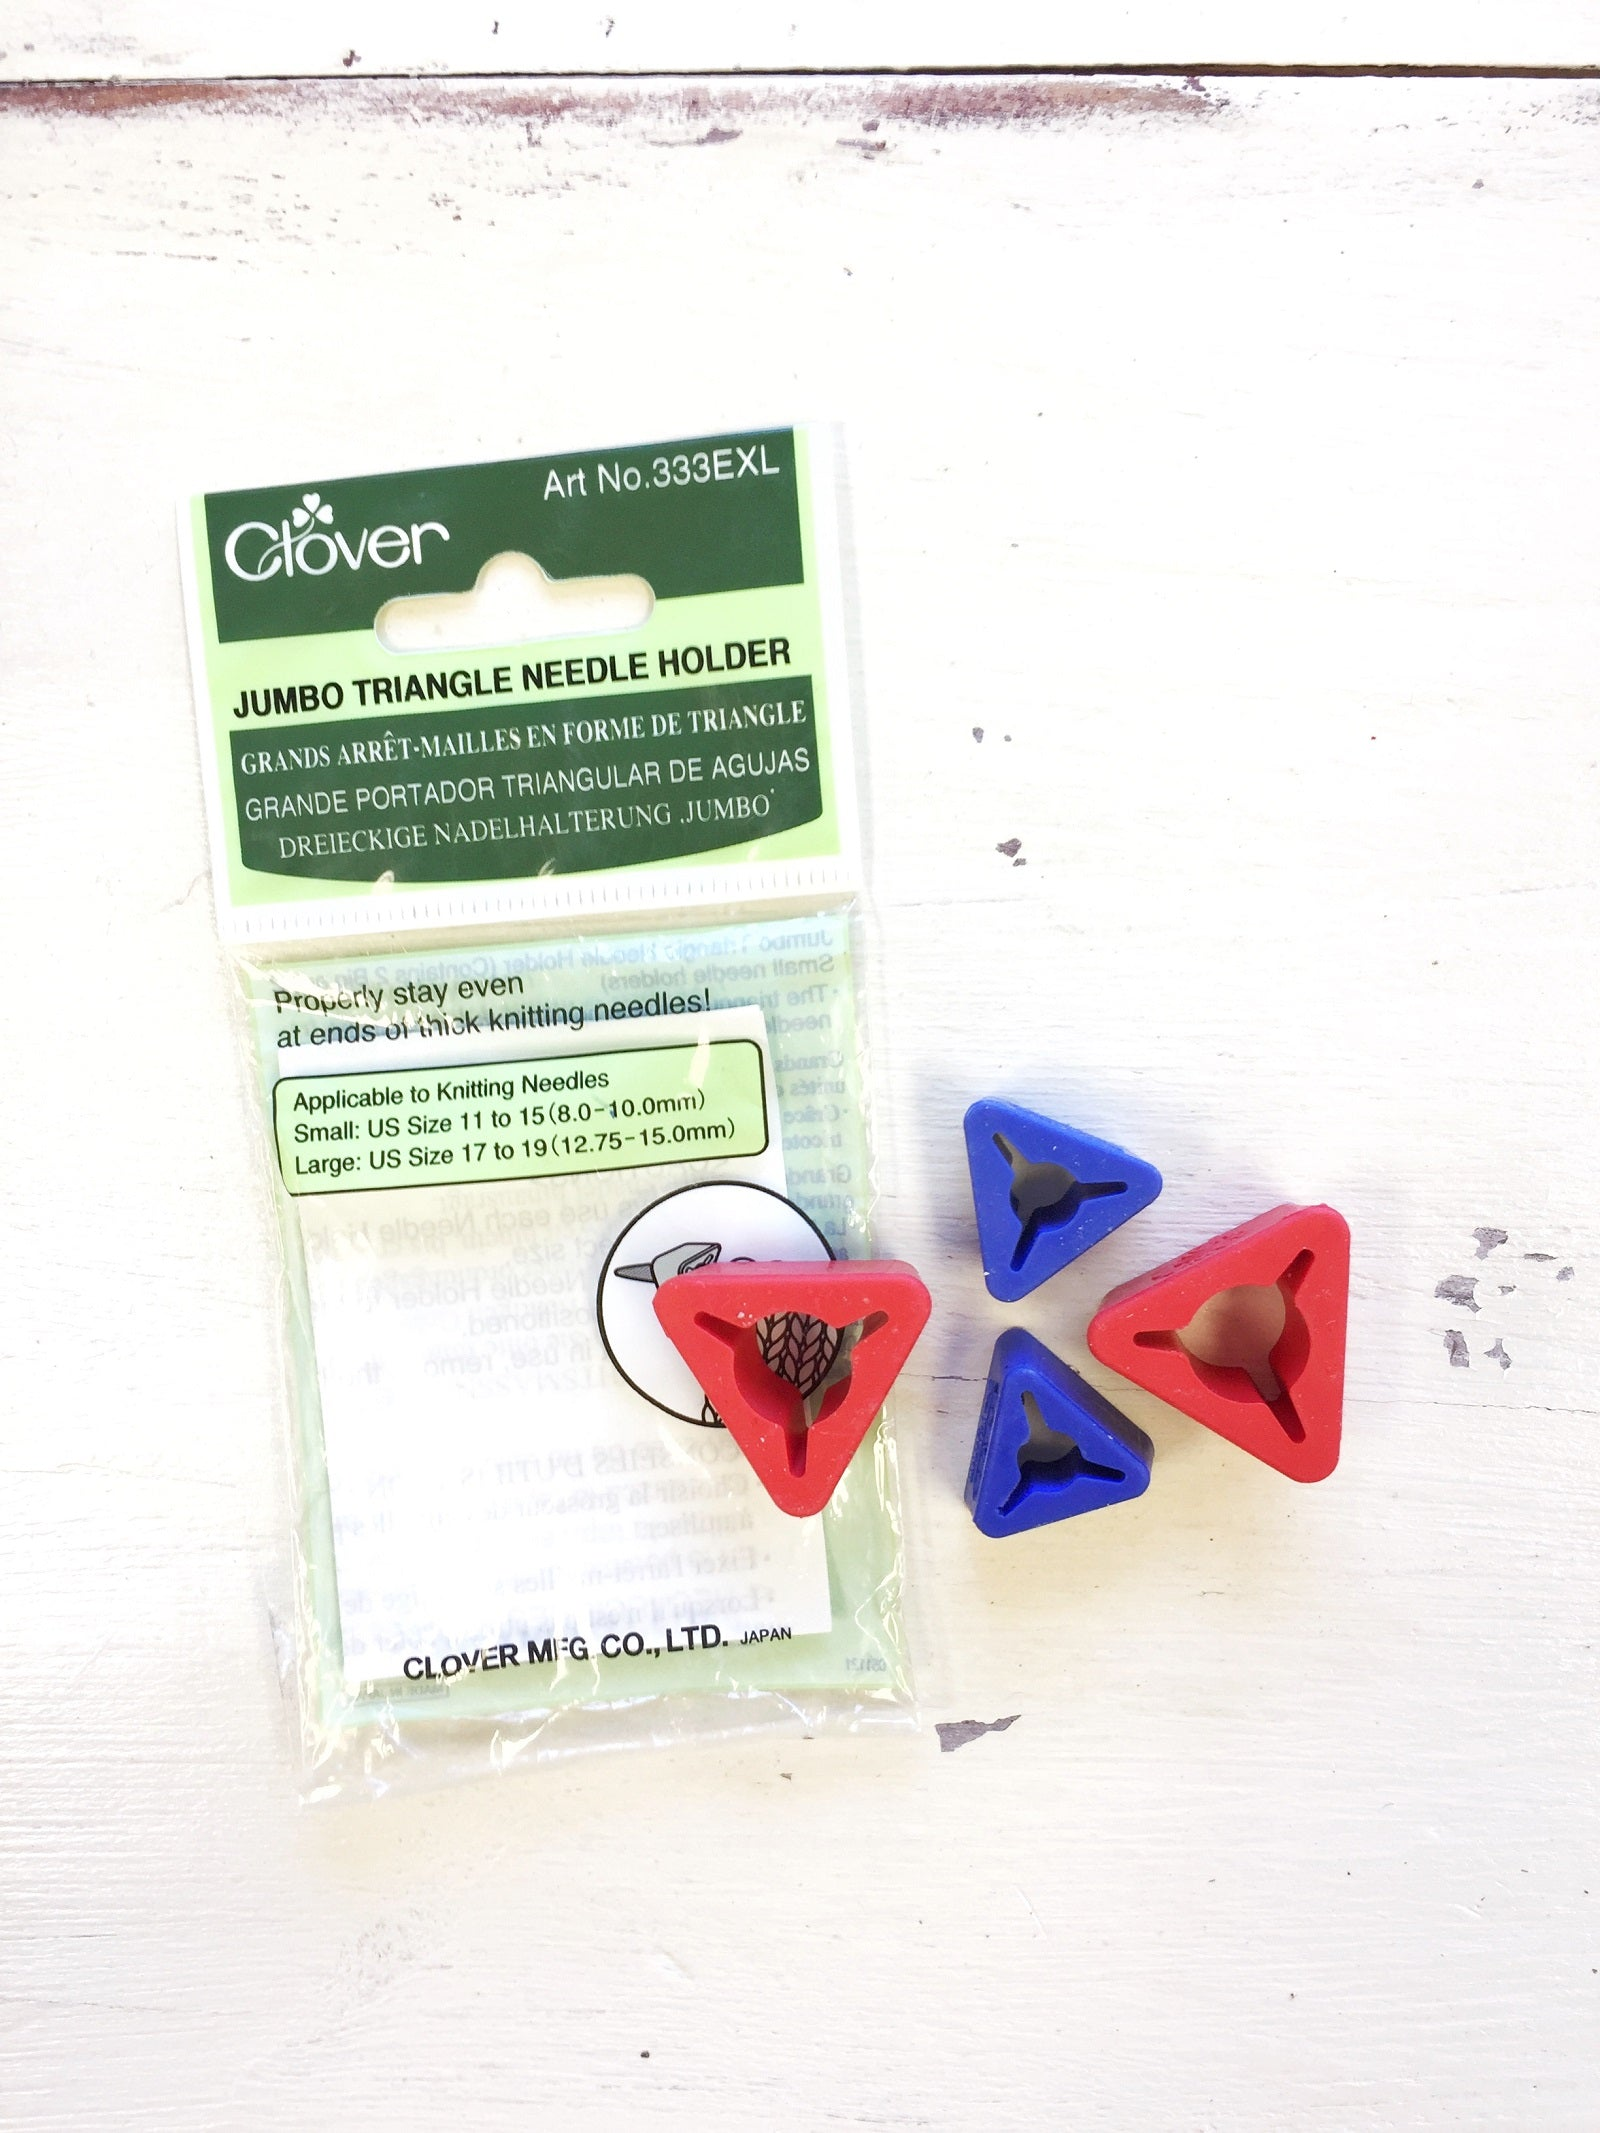 Clover Jumbo Triangle Needle Holder